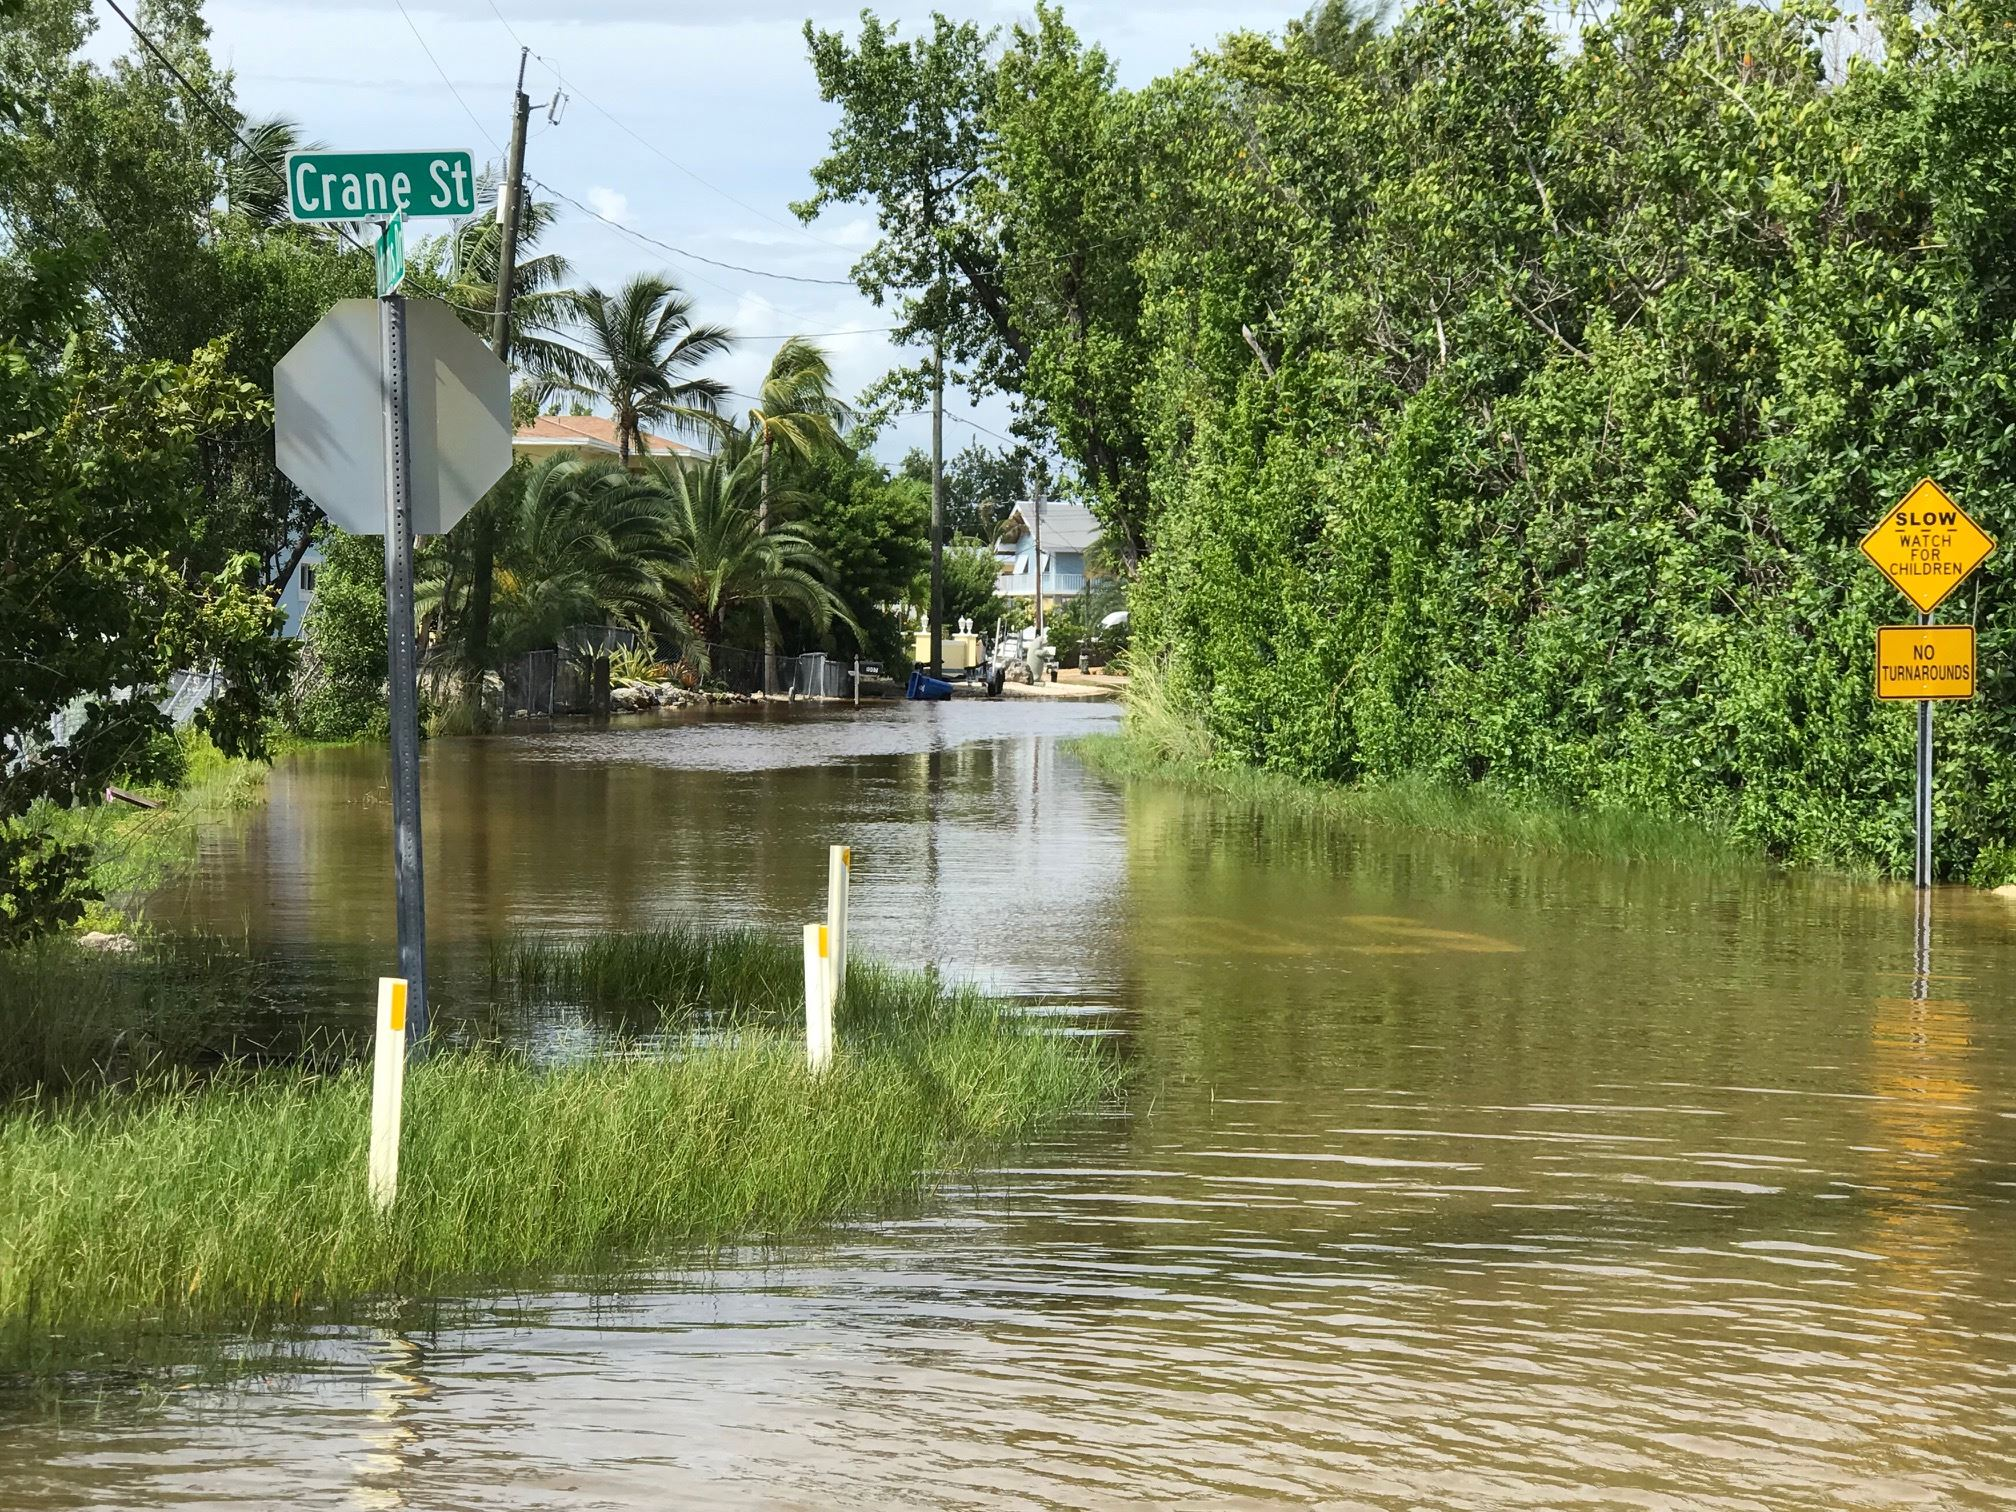 A street in Key Largo is underwater due to king tide events in the Florida Keys